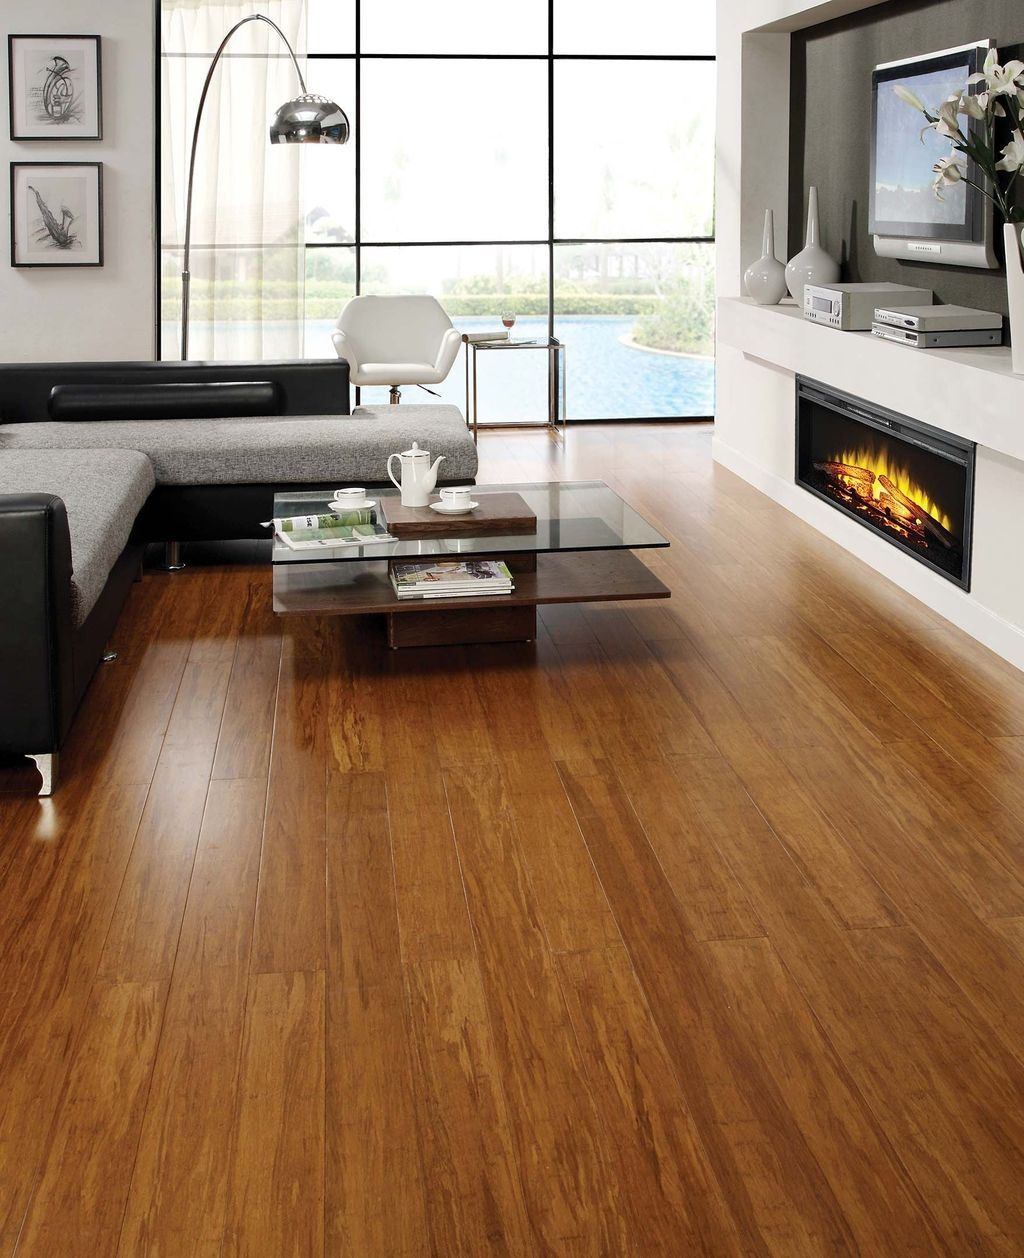 48 Comfy Wooden Tiles Design Ideas For Living Room Floor Design